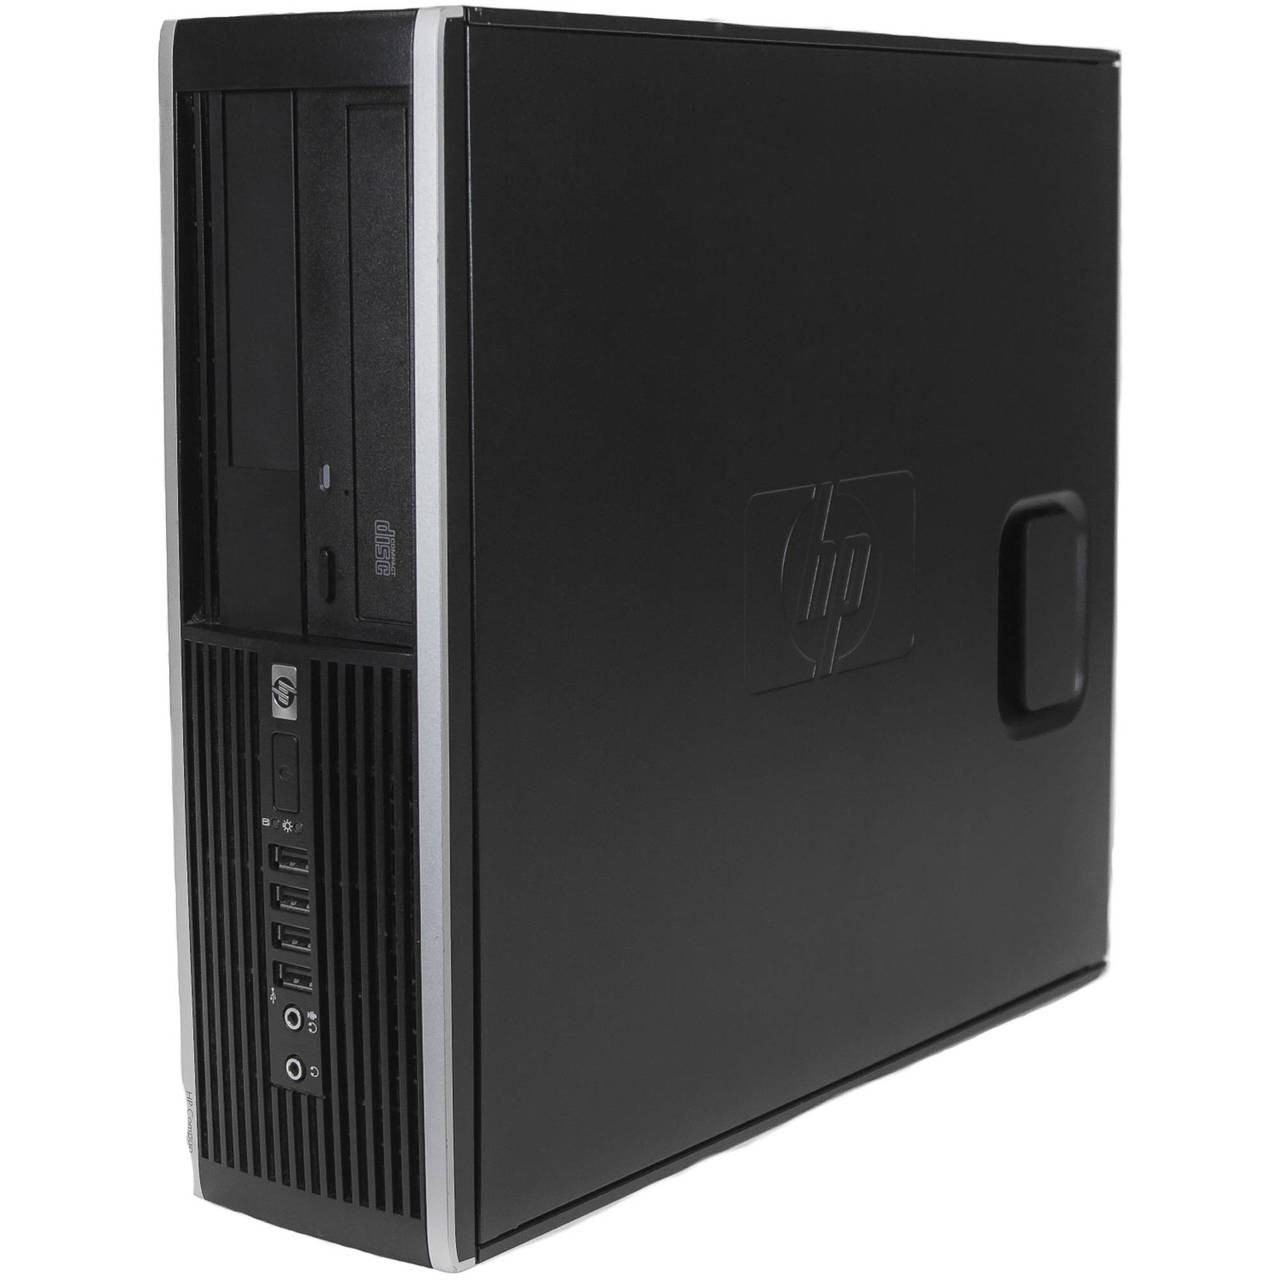 HP Compaq Elite 8100 SFF - Front Display 2